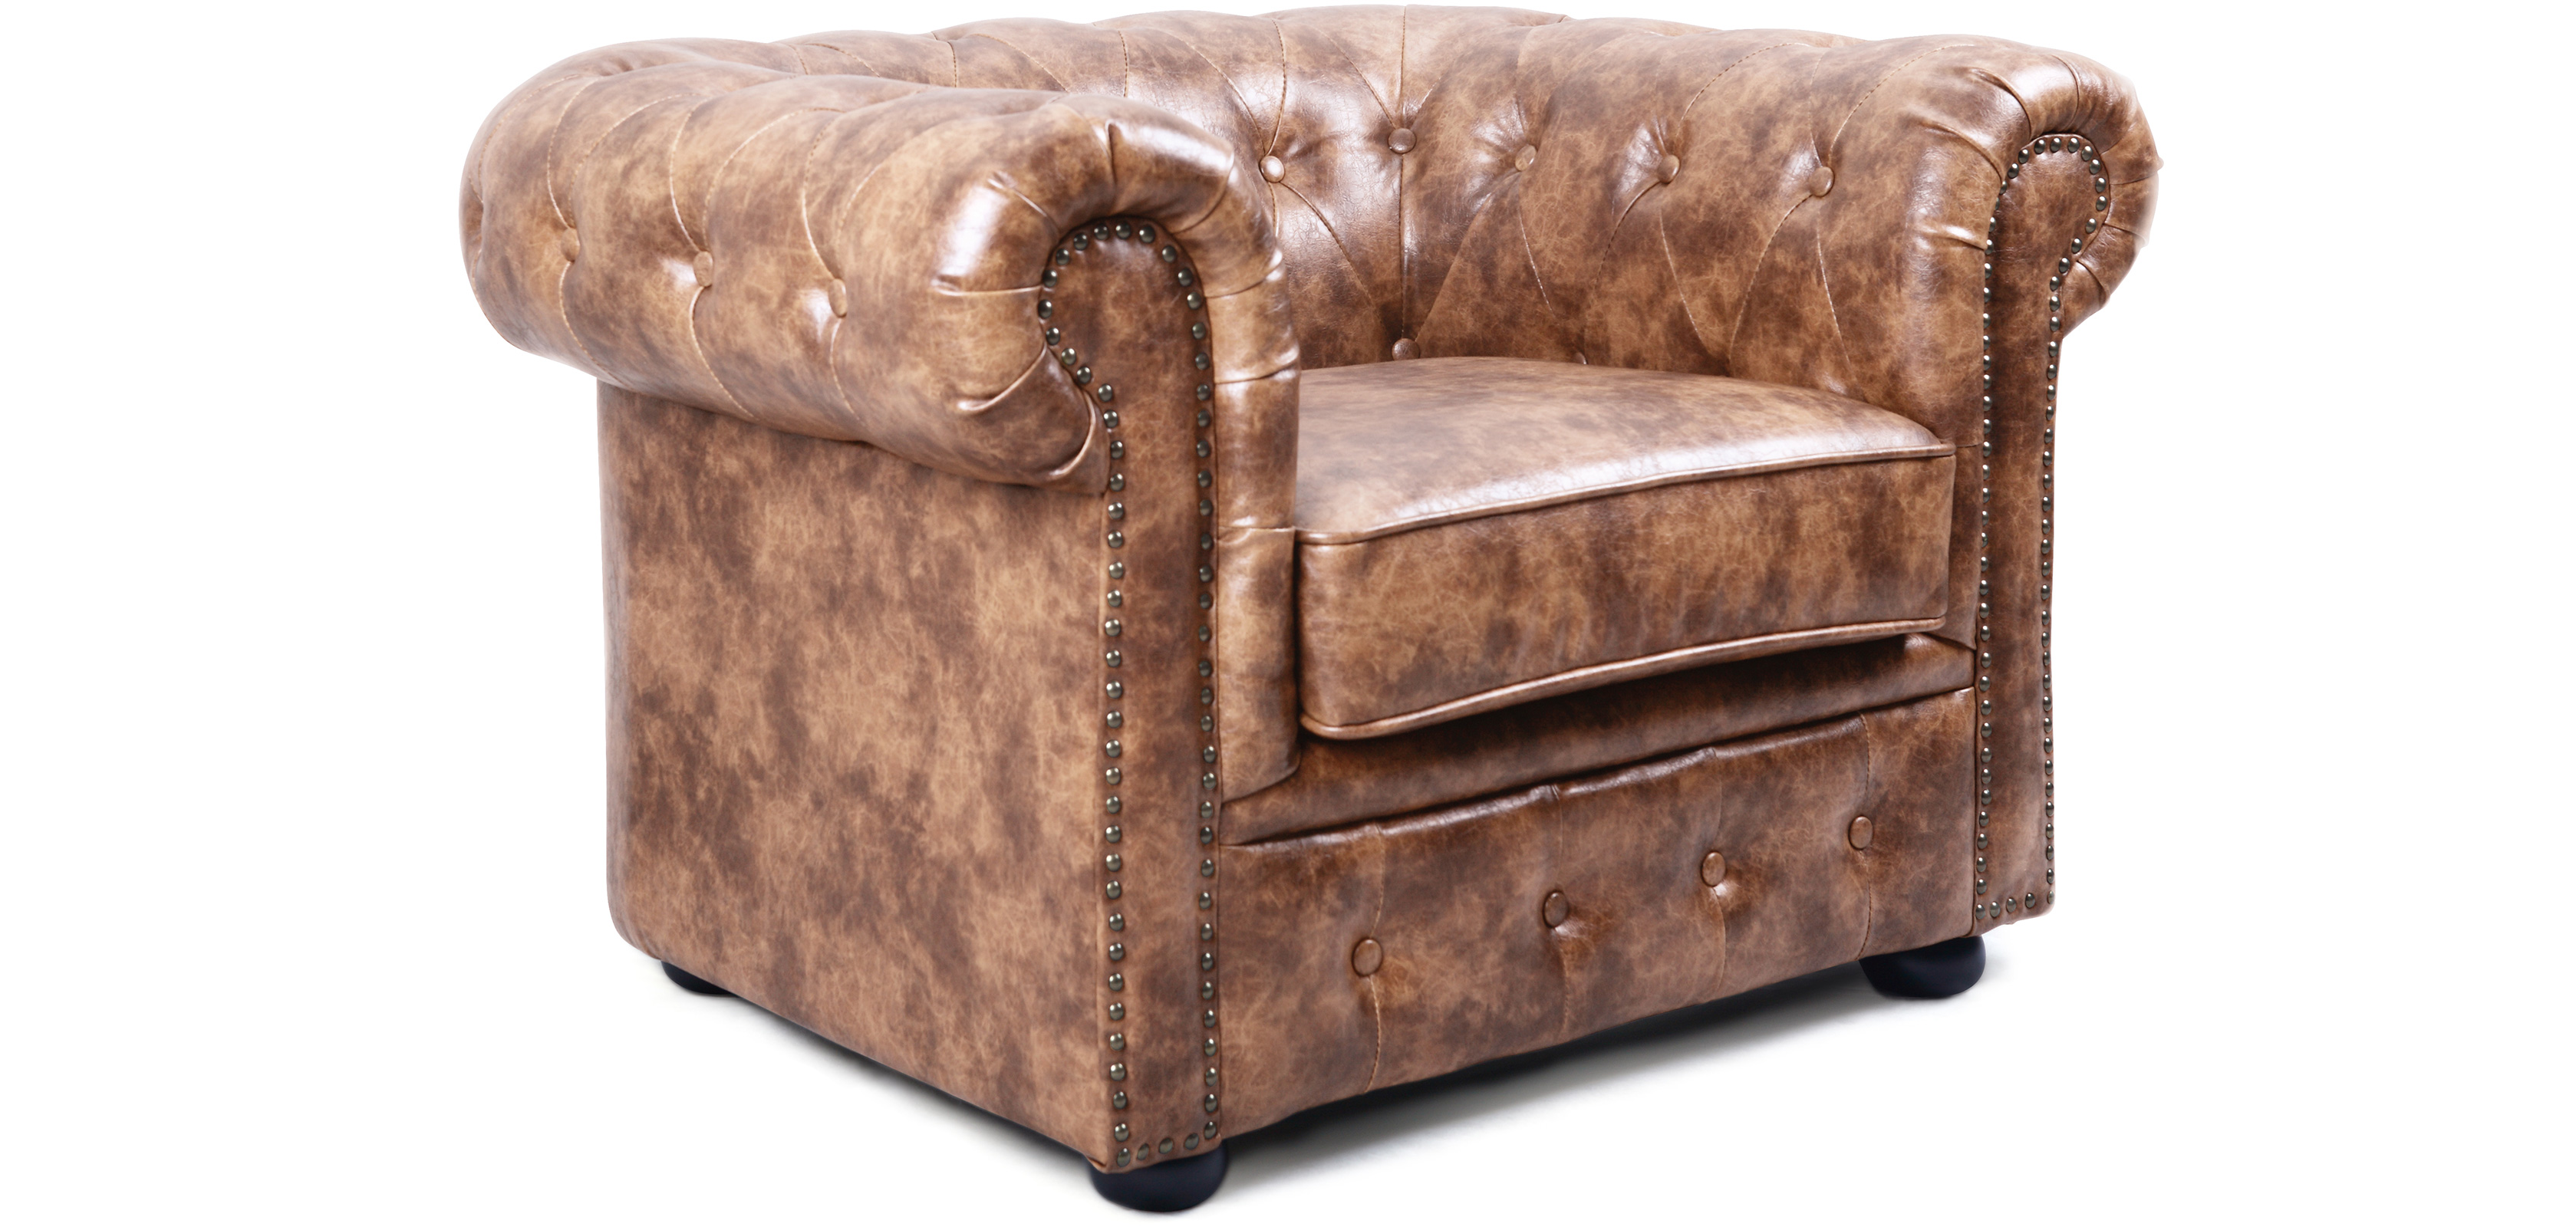 Chesterfield Sessel Braun Vintage Chesterfield Sessel